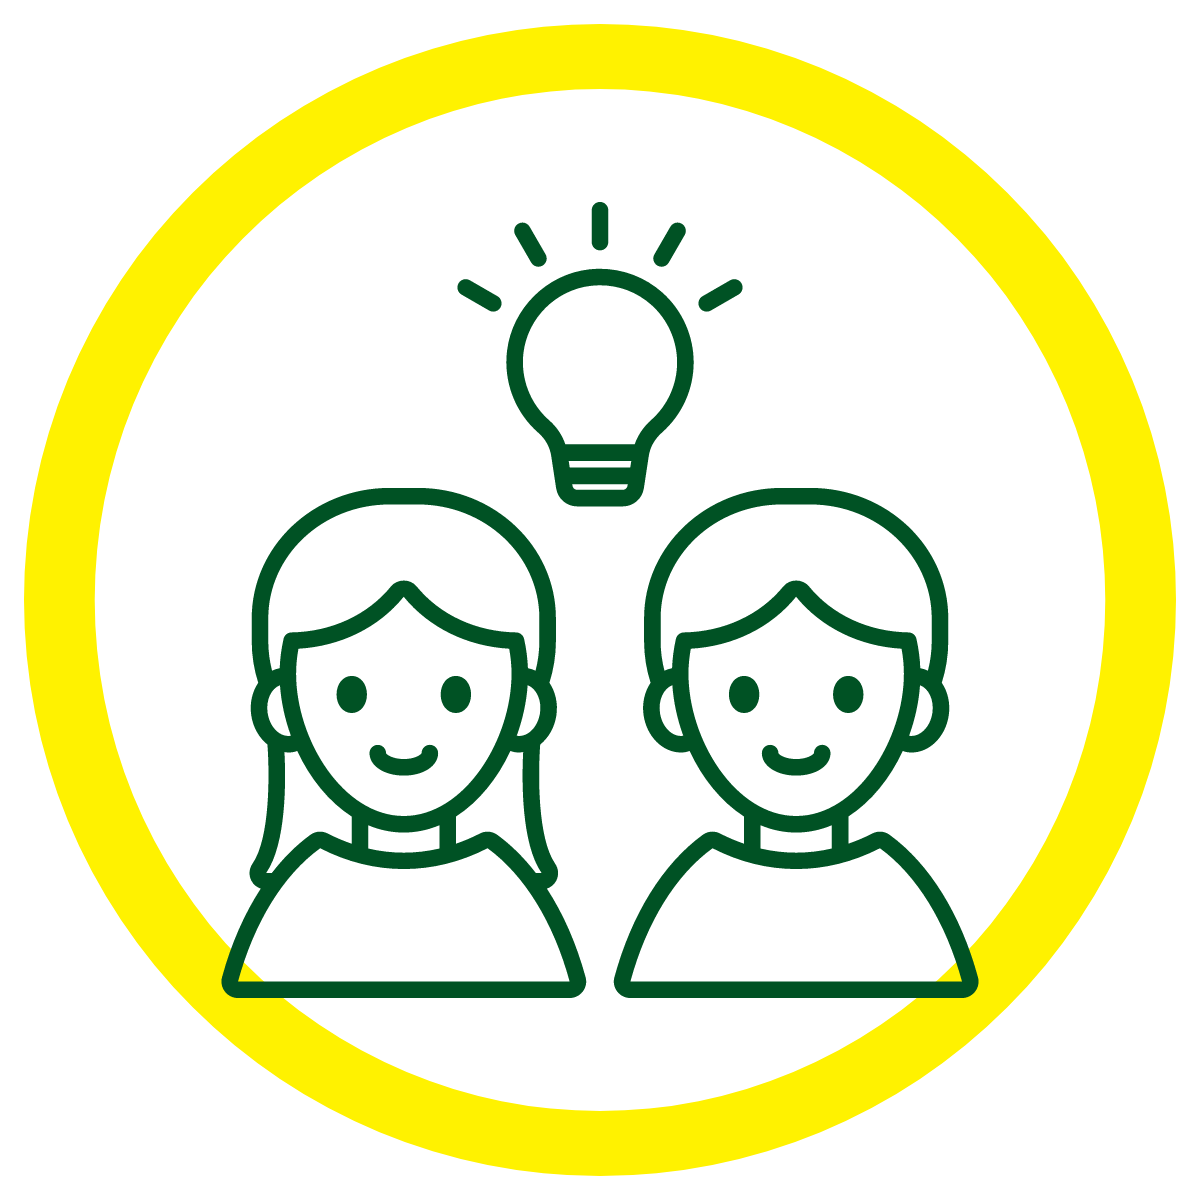 Simple line drawing of two people with a light bulb above them to indicate creative ideas